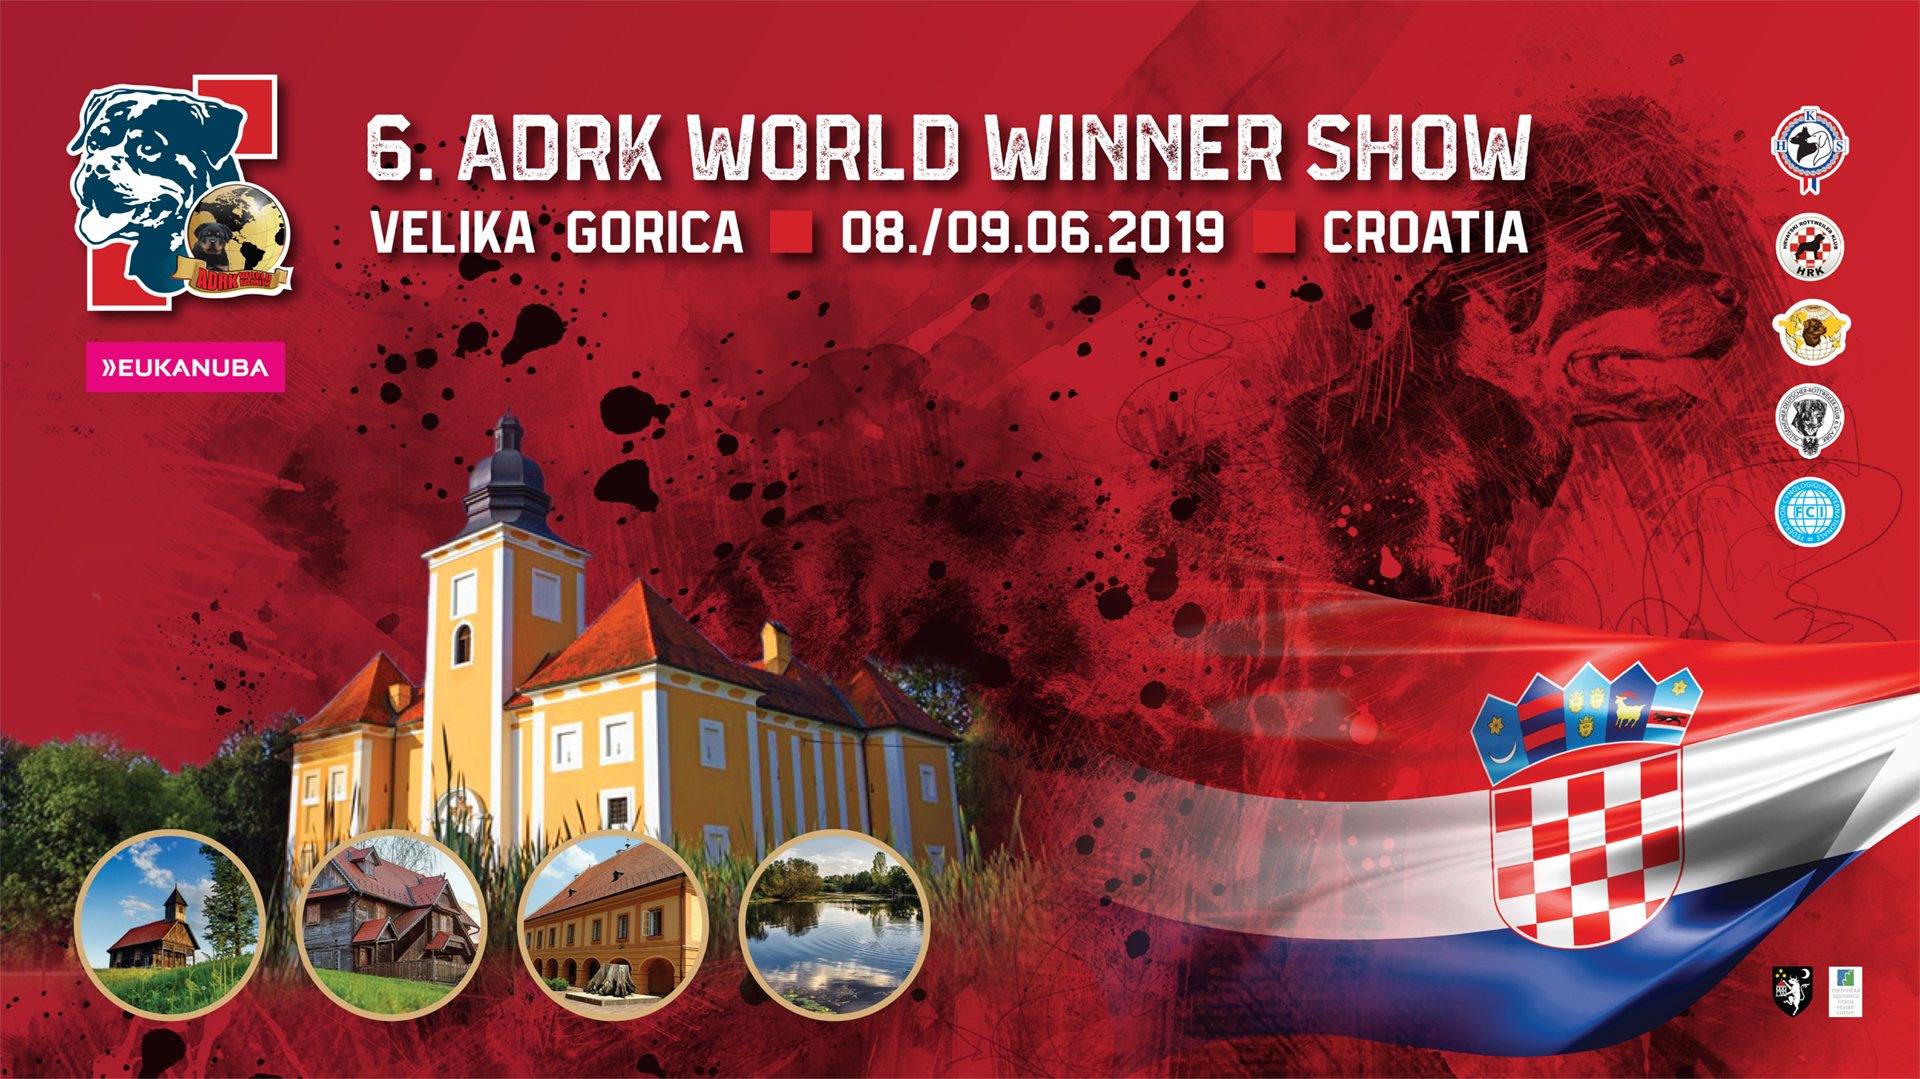 ADRK World Winner show 2019